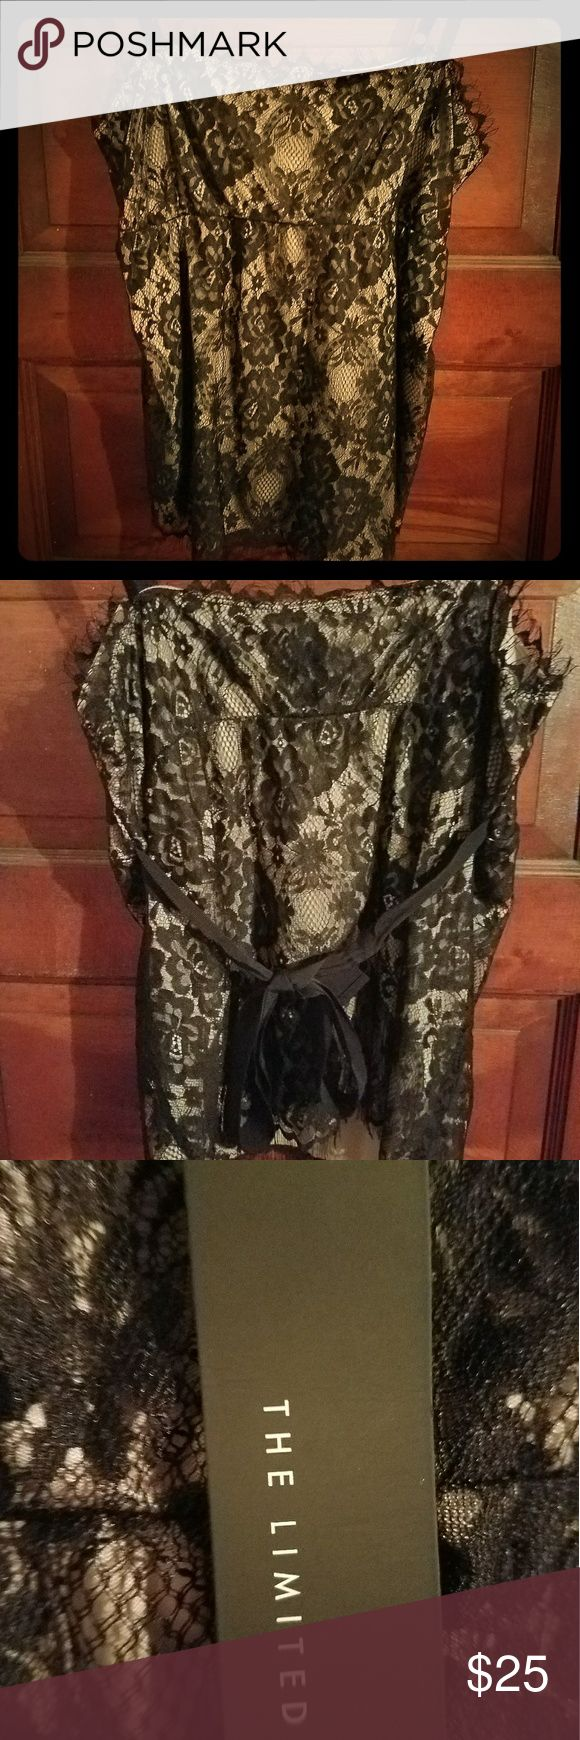 The Limited Black Lace Cami Top NWT NWT black lace over nude cami top with adjustable straps and ribbon tie in back. Pairs well with a black suit for career wear or with jeans for casual wear. The Limited Tops Camisoles